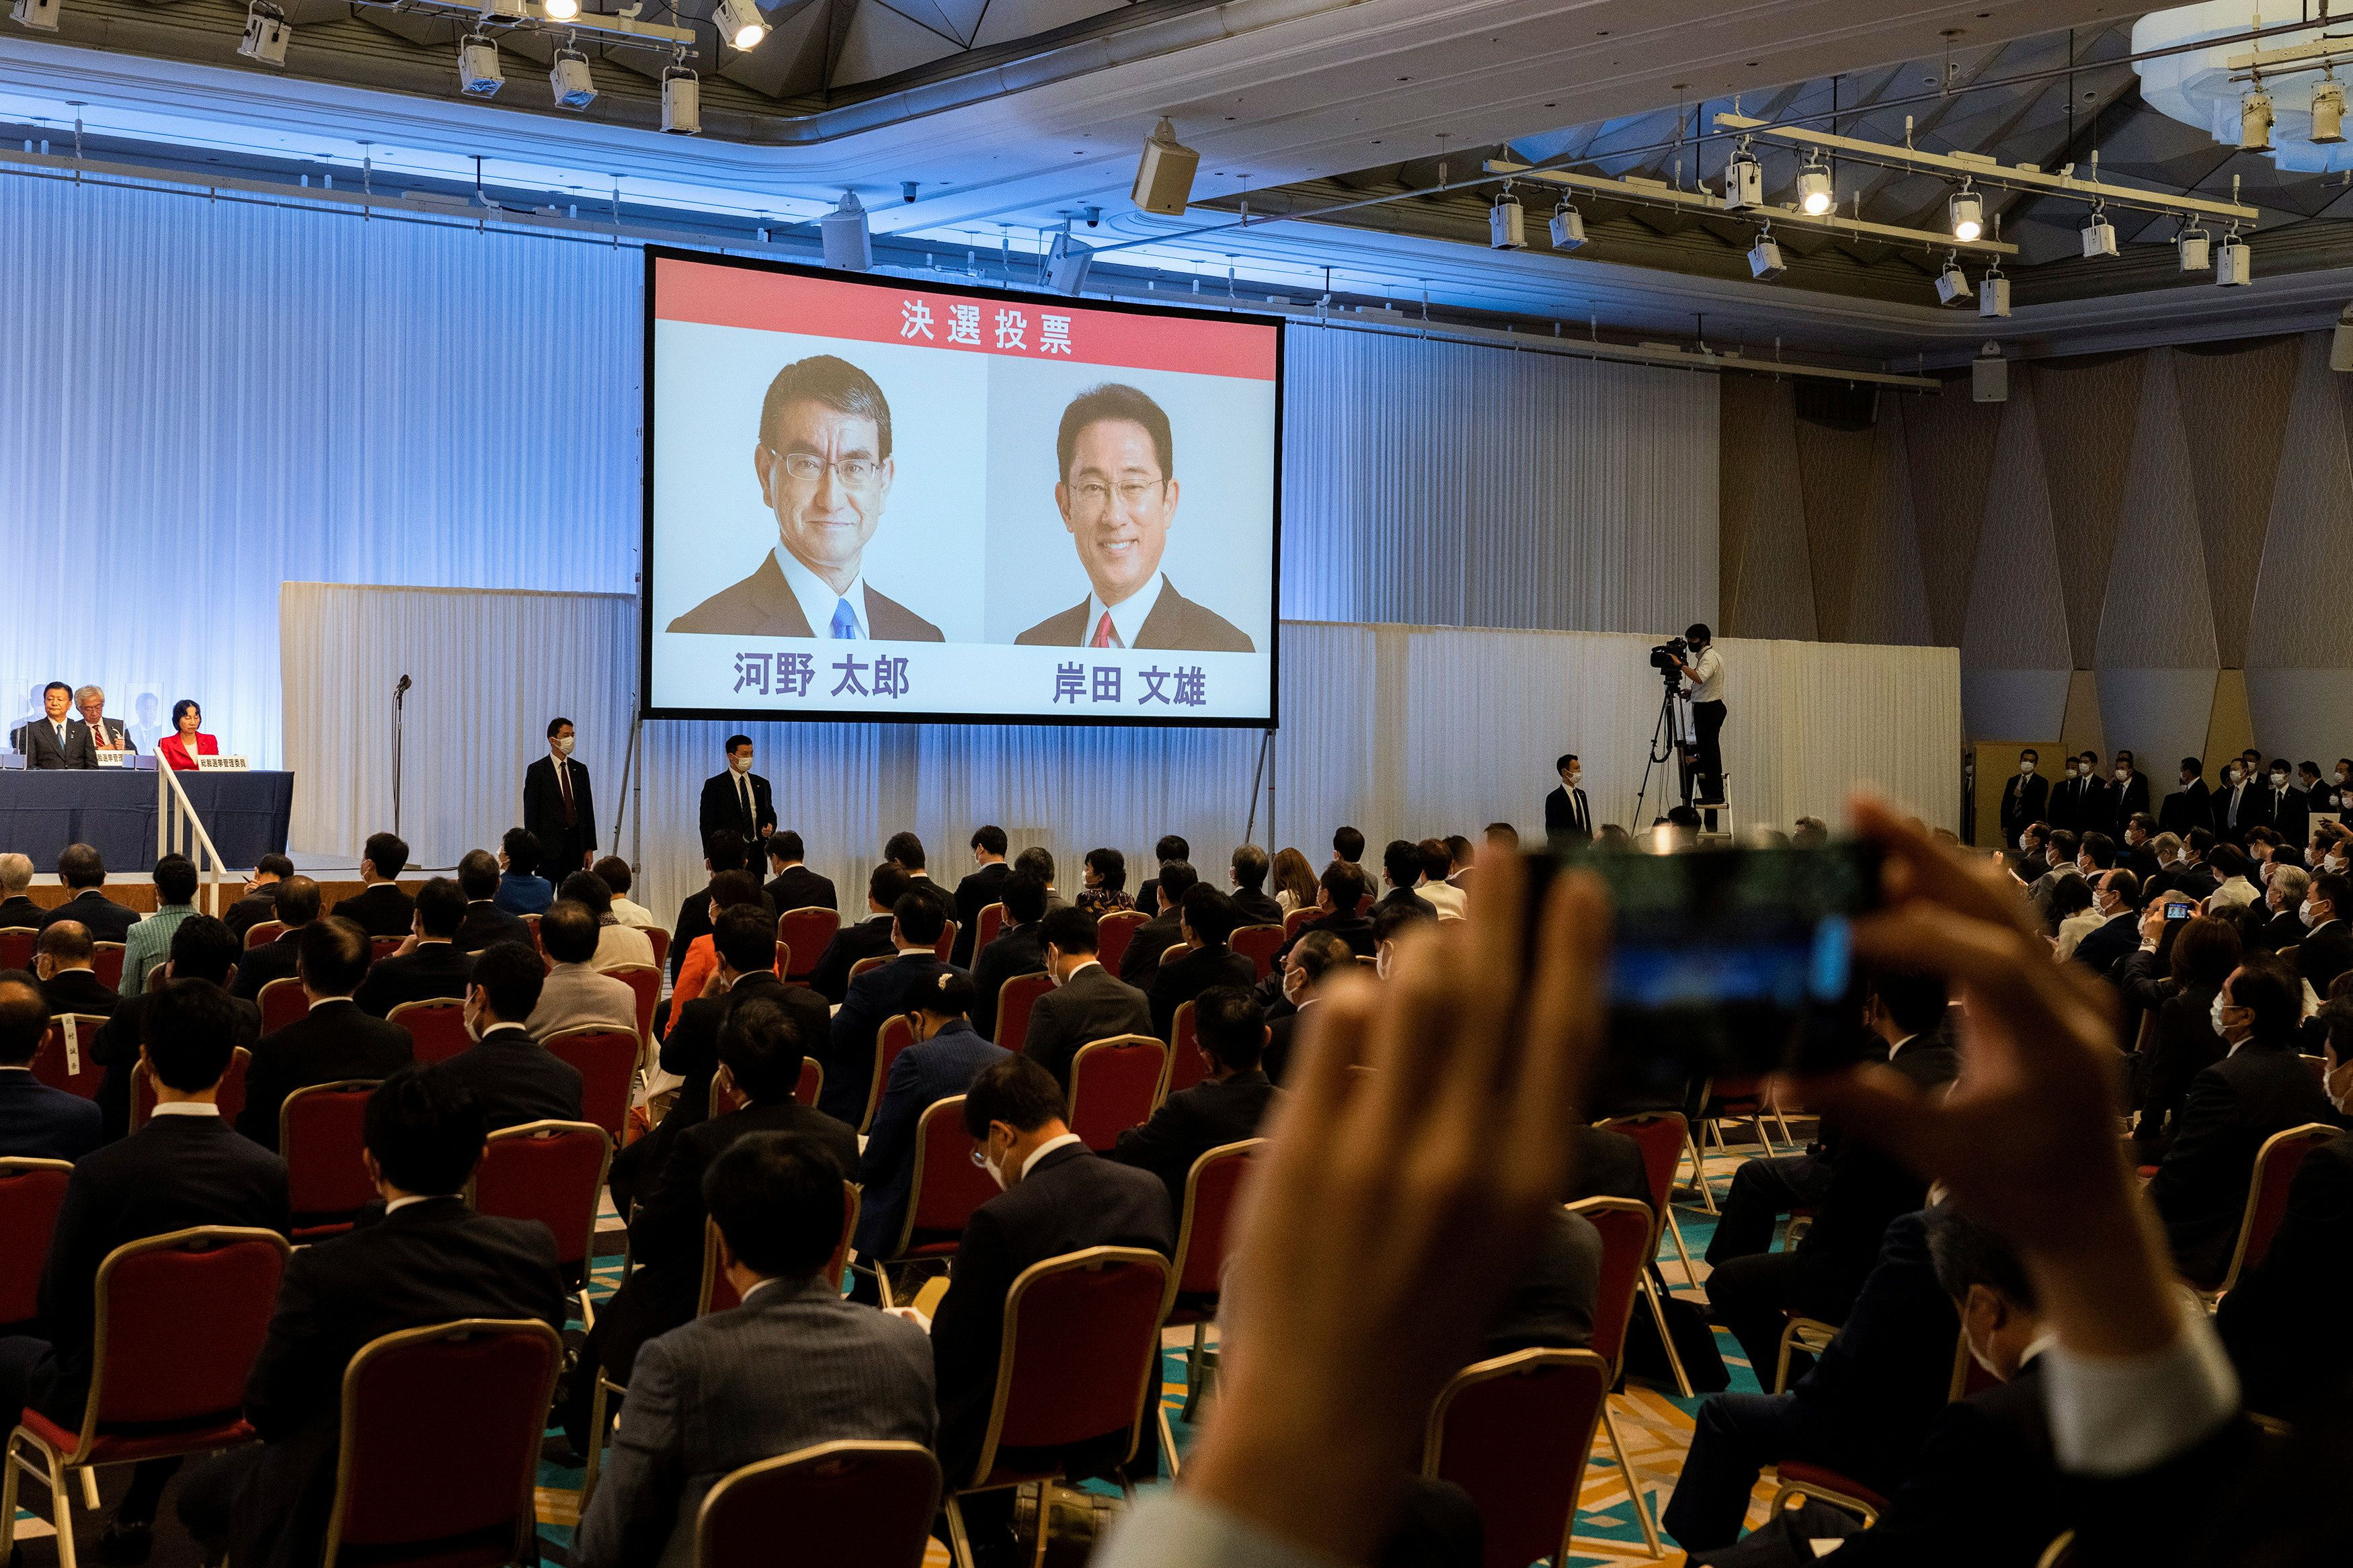 Liberal Democrat Party leadership candidates, Taro Kono and Fumio Kishida are displayed on a screen during the party leadership election in Tokyo, Japan September 29, 2021. Carl Court/Pool via REUTERS